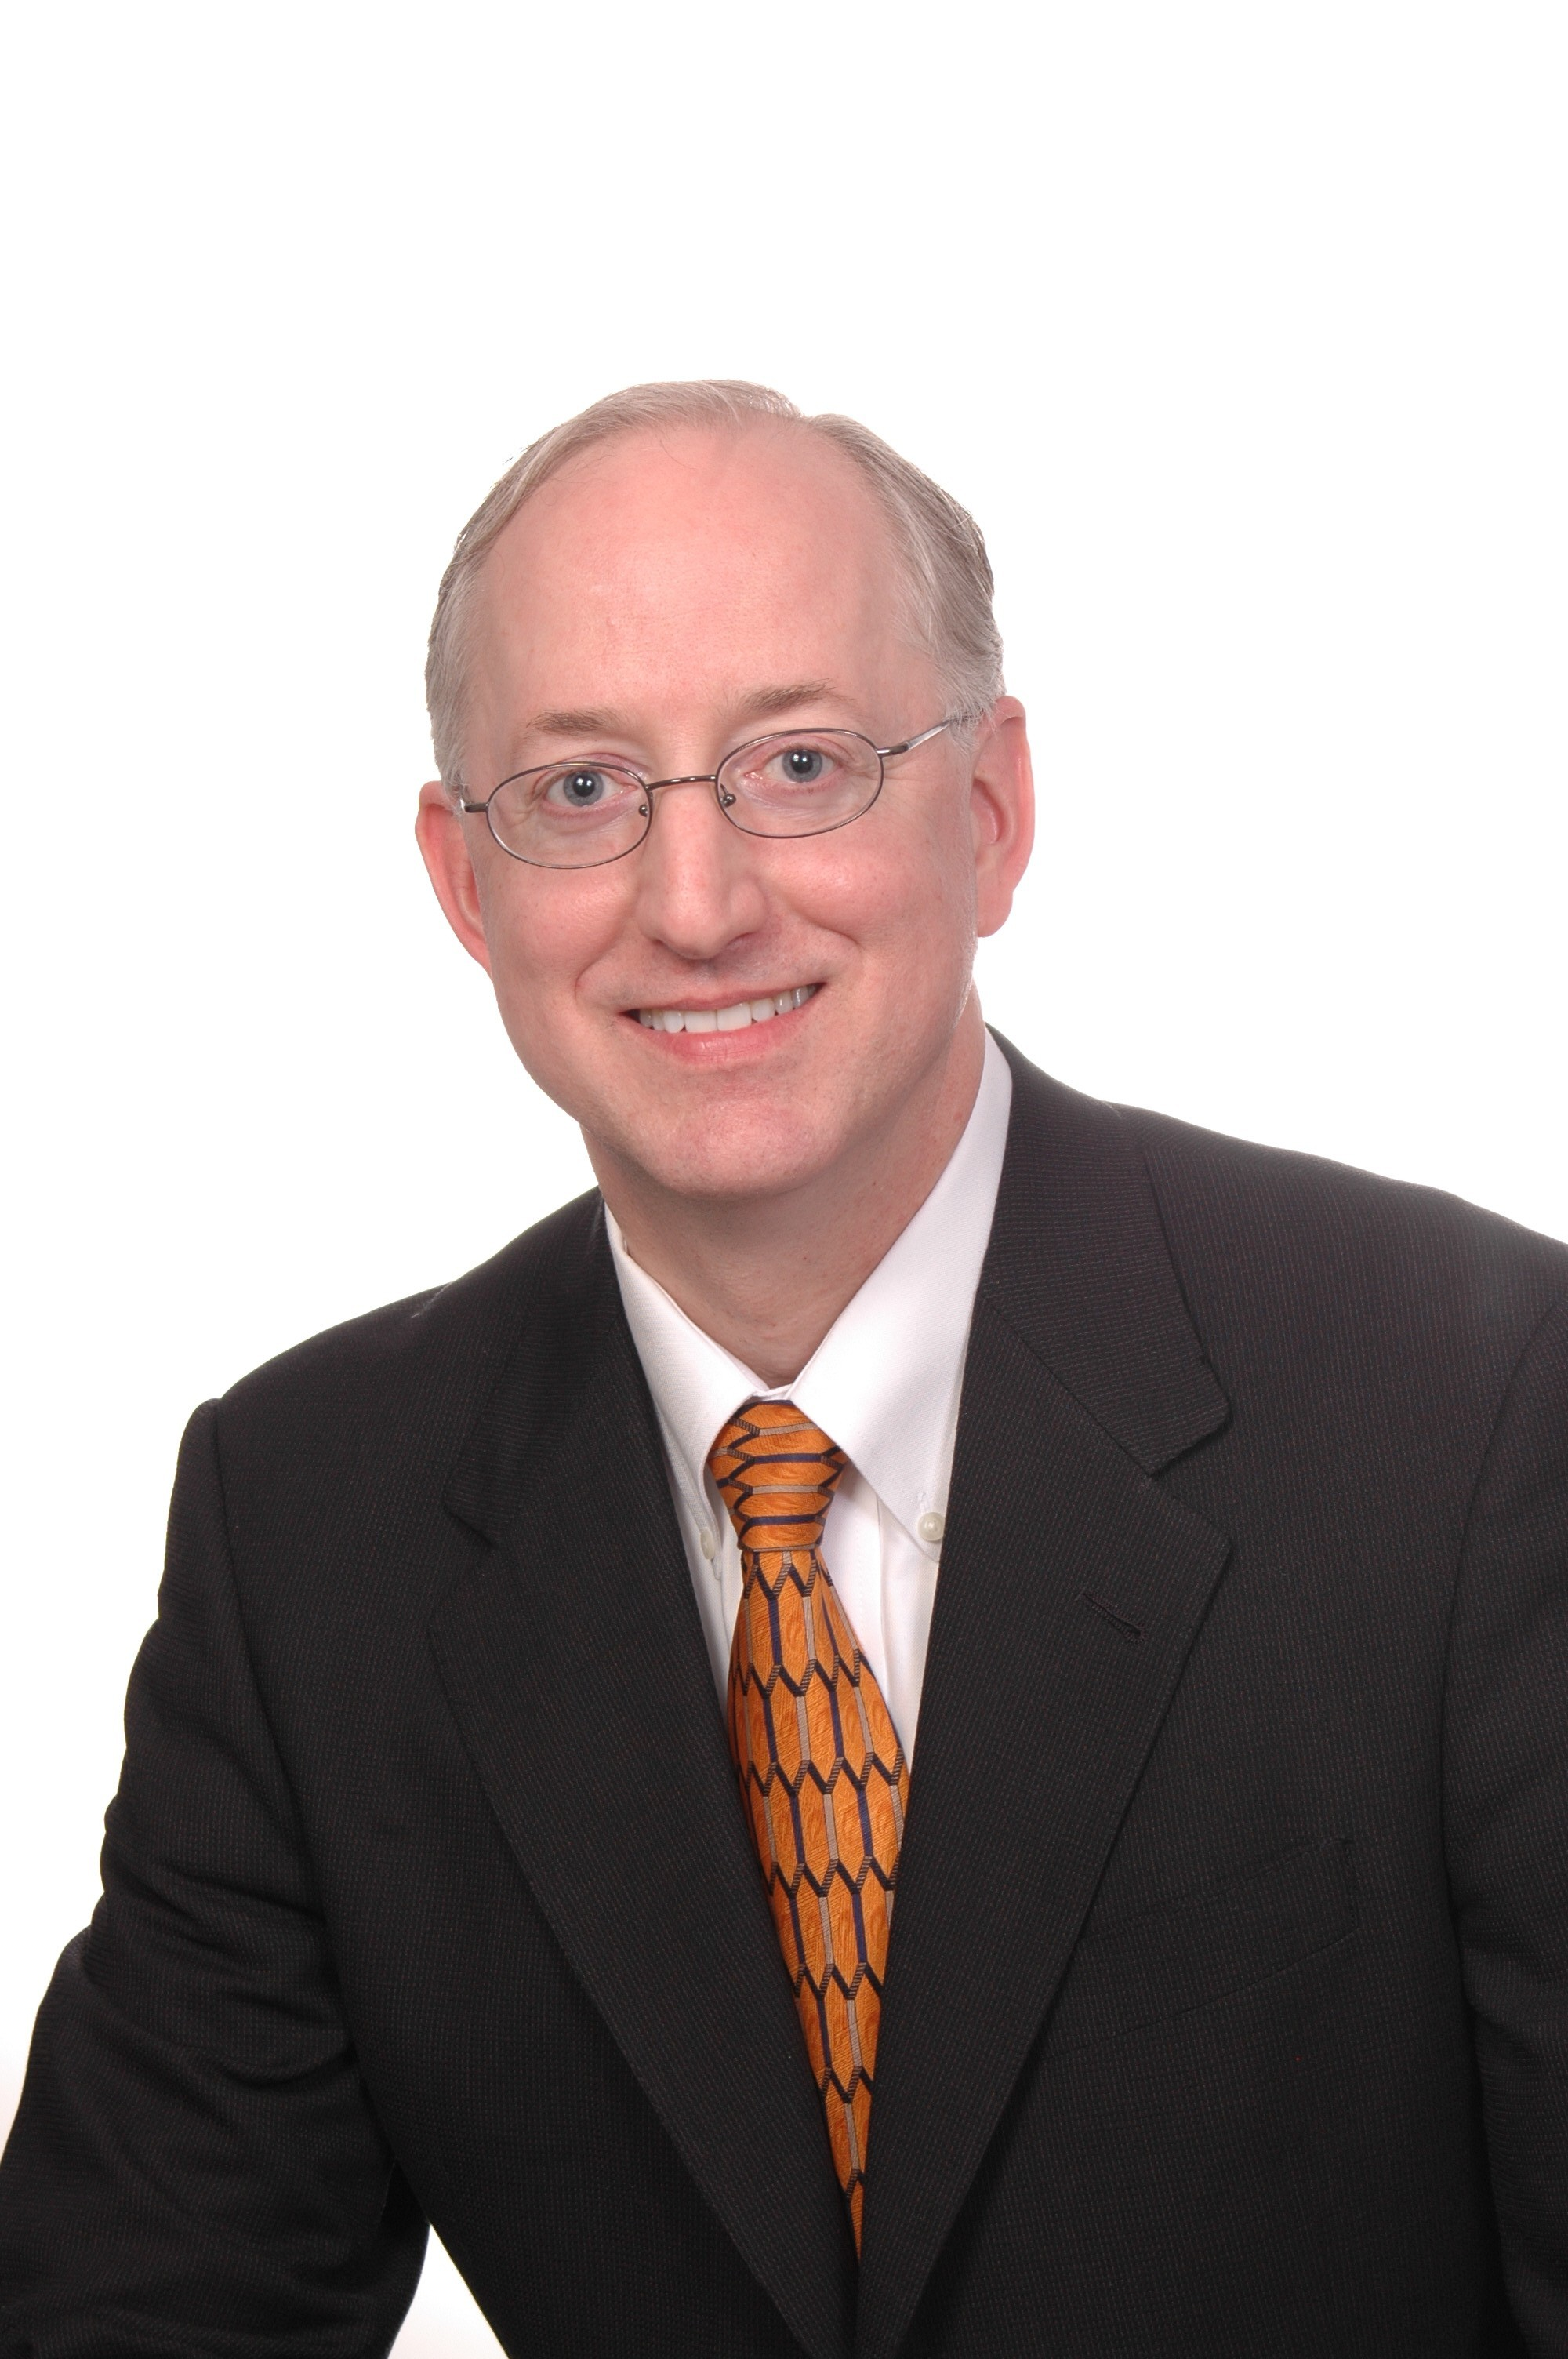 John Frymire, financial advisor Fisherville KY